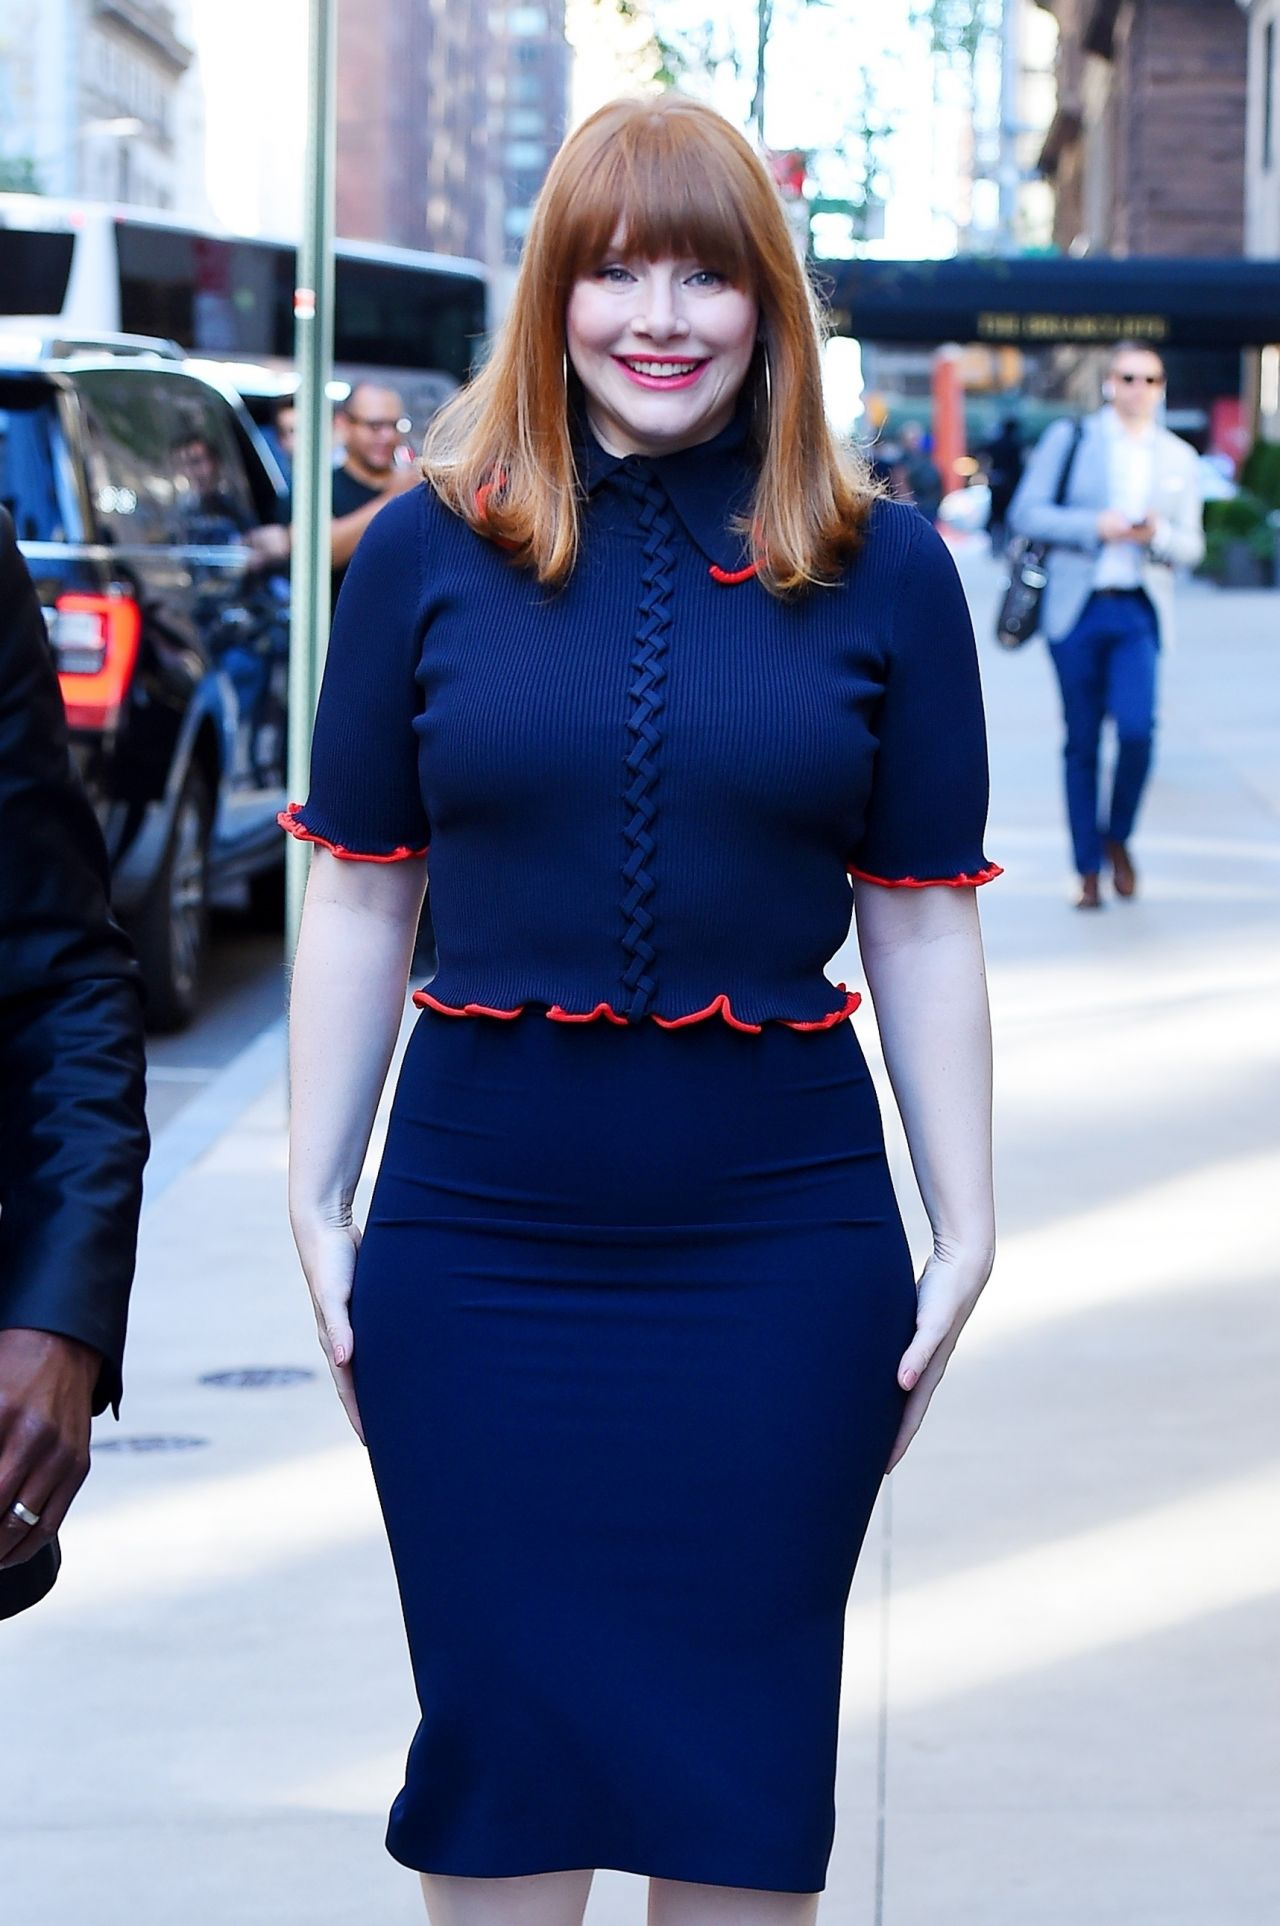 Bryce Dallas Howard Arriving To Appear On Today Show In